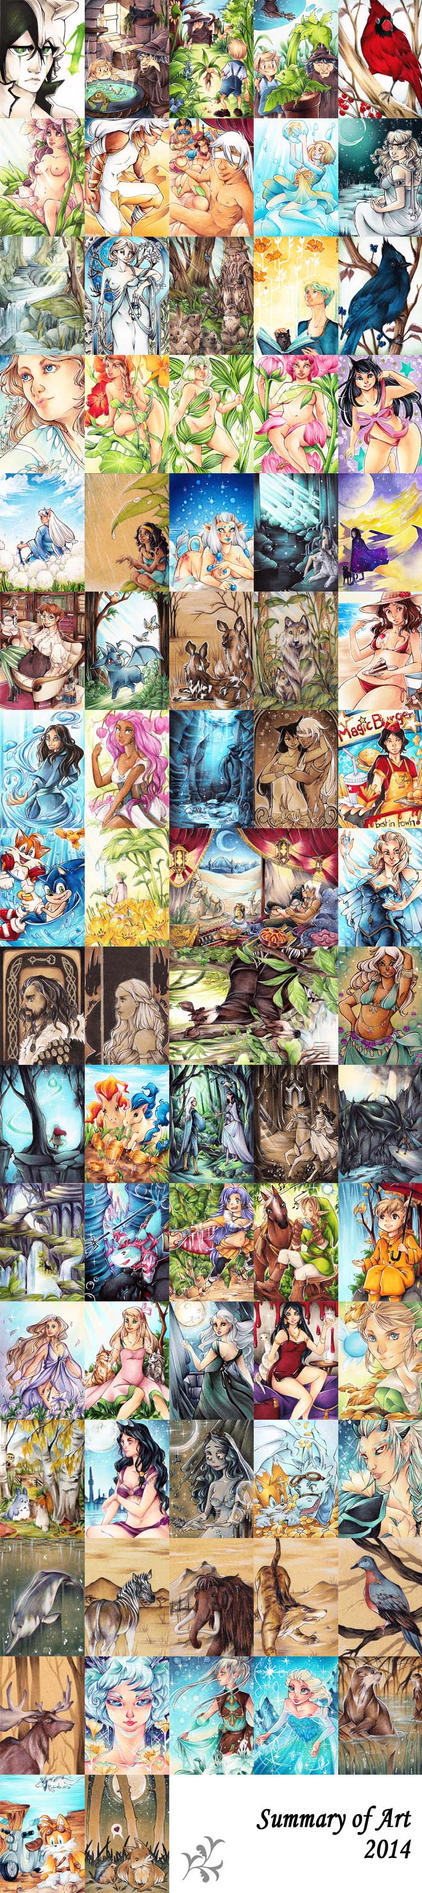 Summary of art 2014 by Zeolith